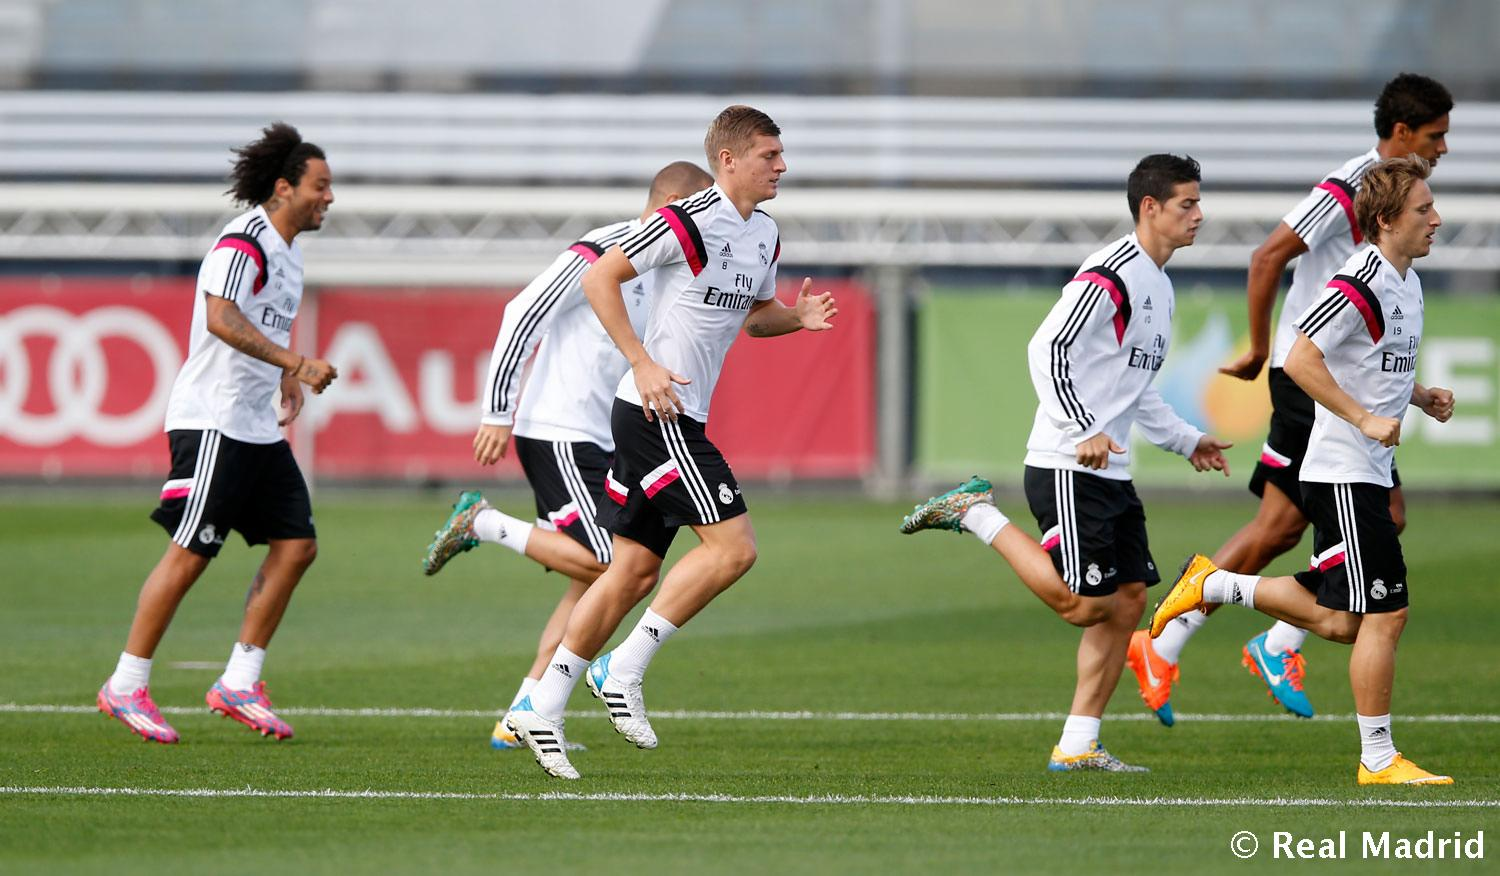 Real Madrid - Entrenamiento del Real Madrid - 22-09-2014